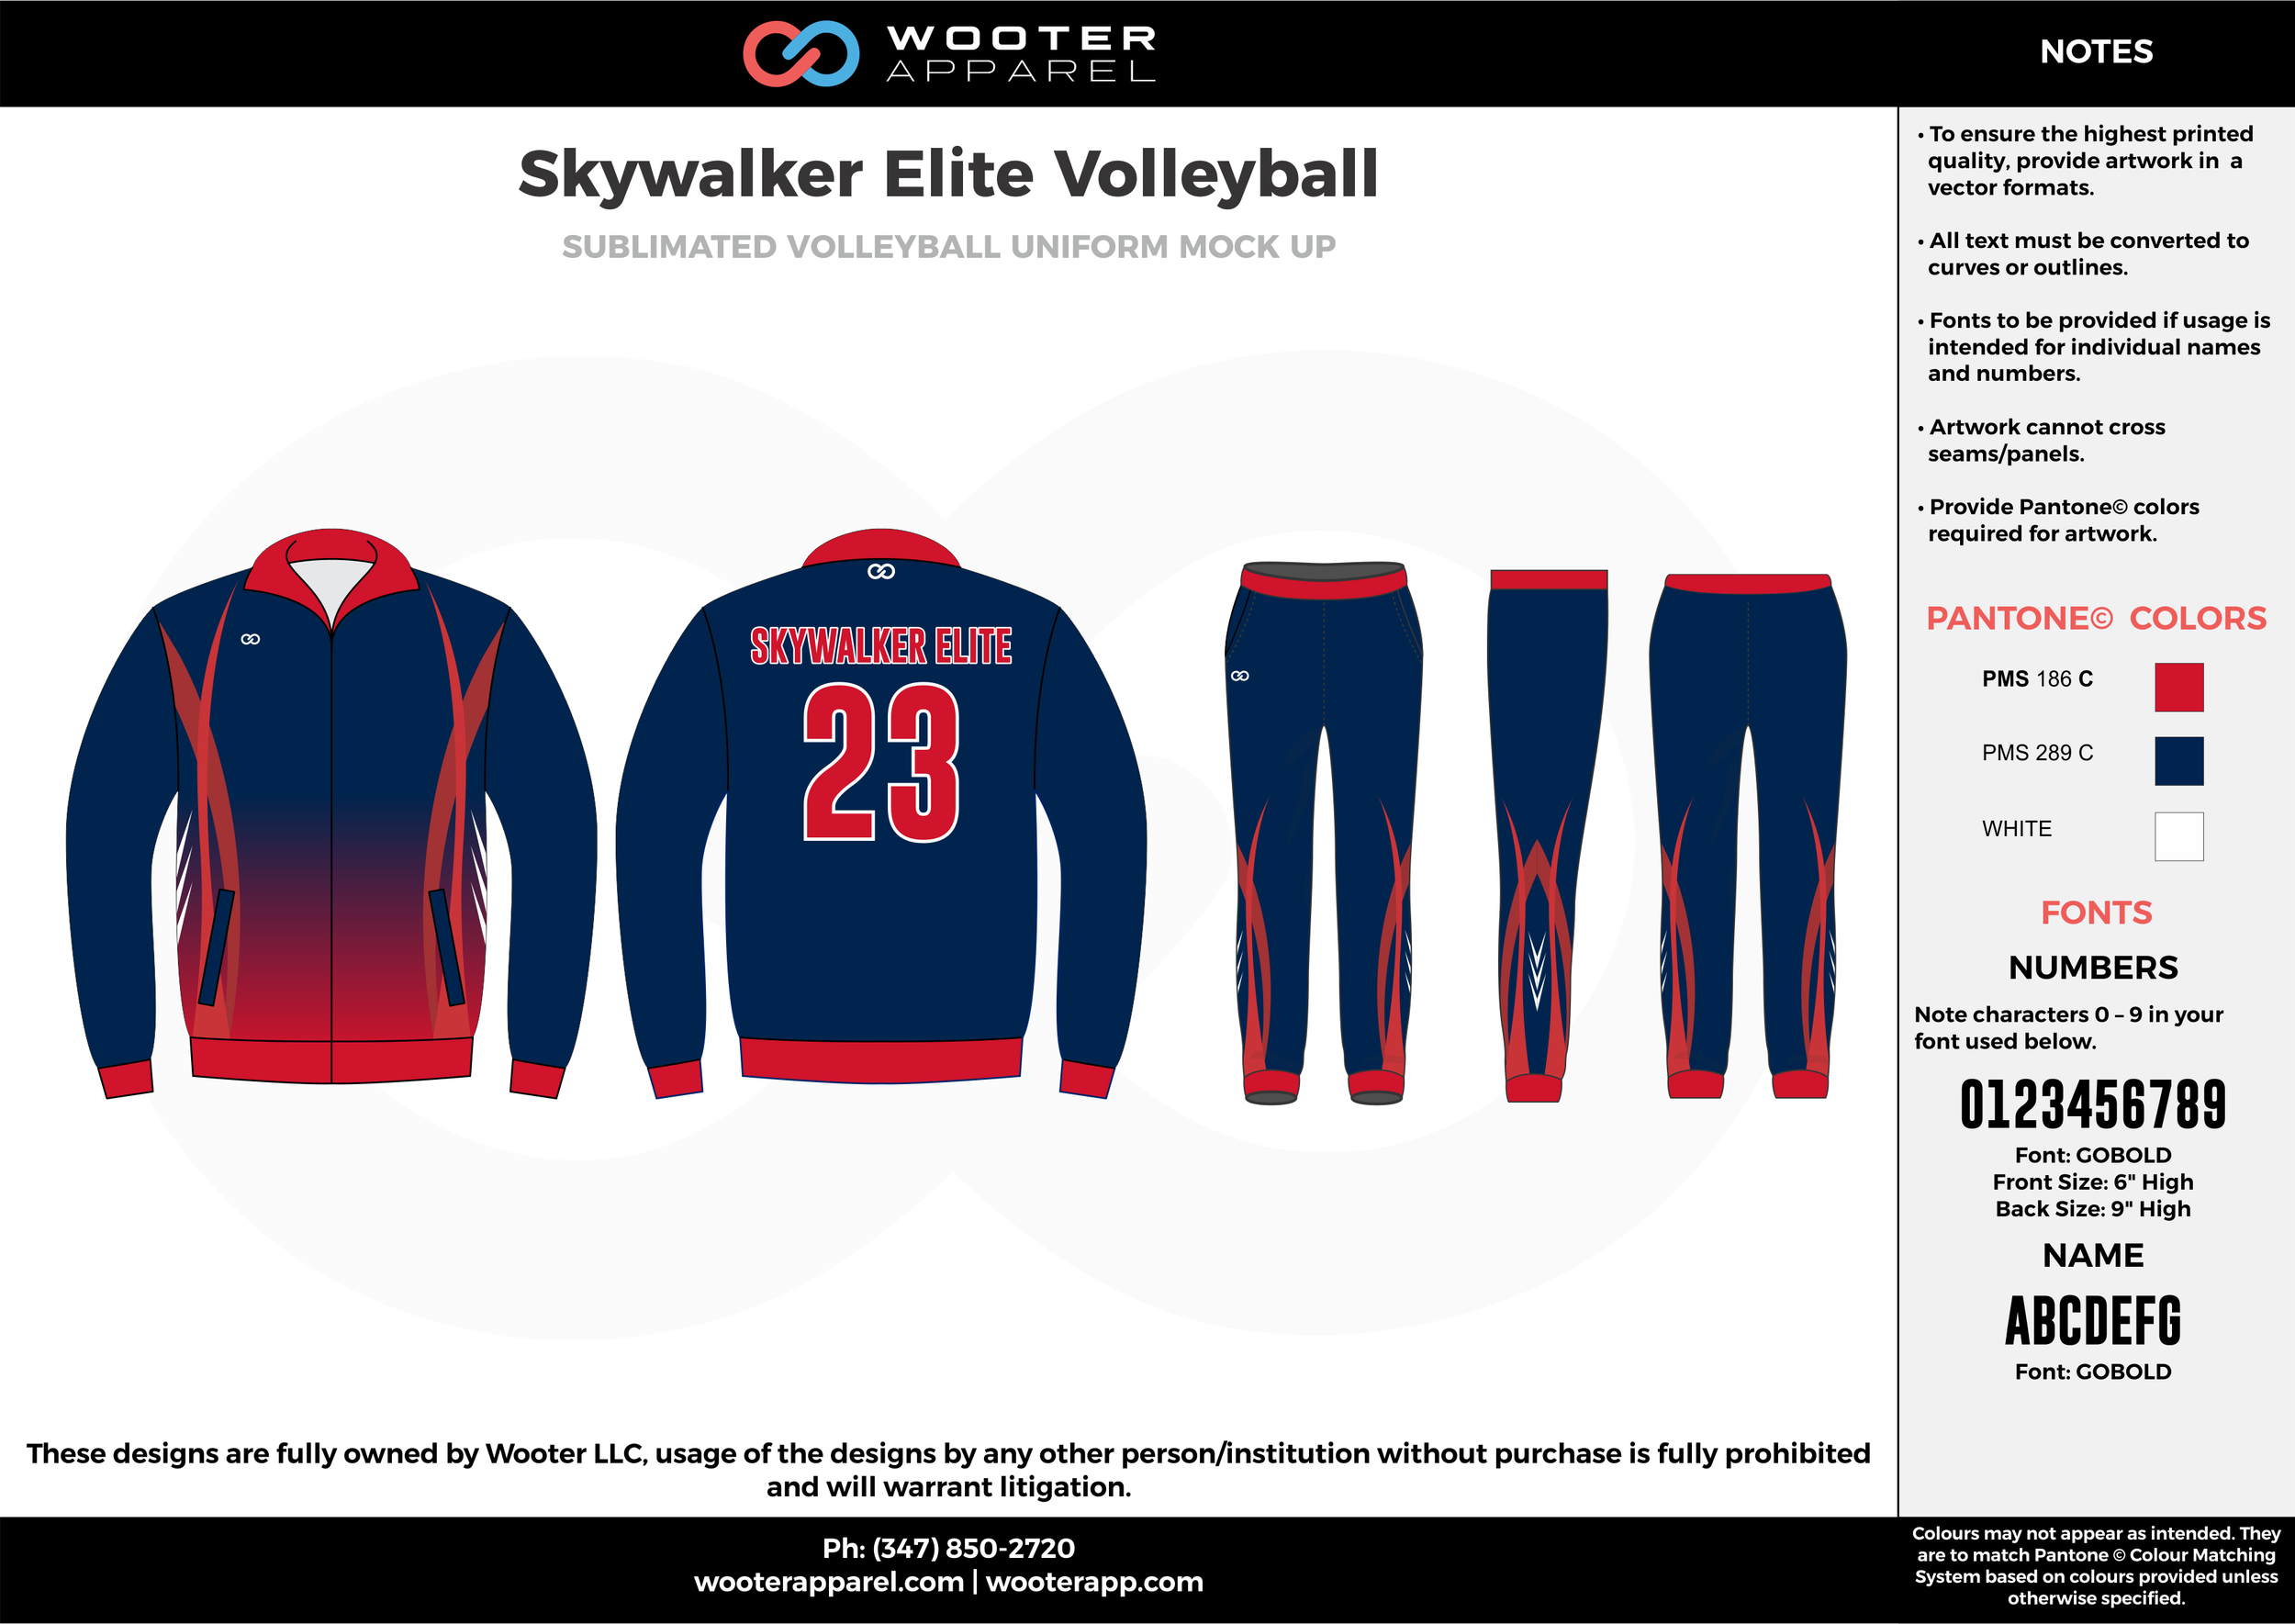 SKYWALKER ELITE VOLLEYBALL red dark blue Volleyball Uniforms, Long Sleeve Jerseys, Pants